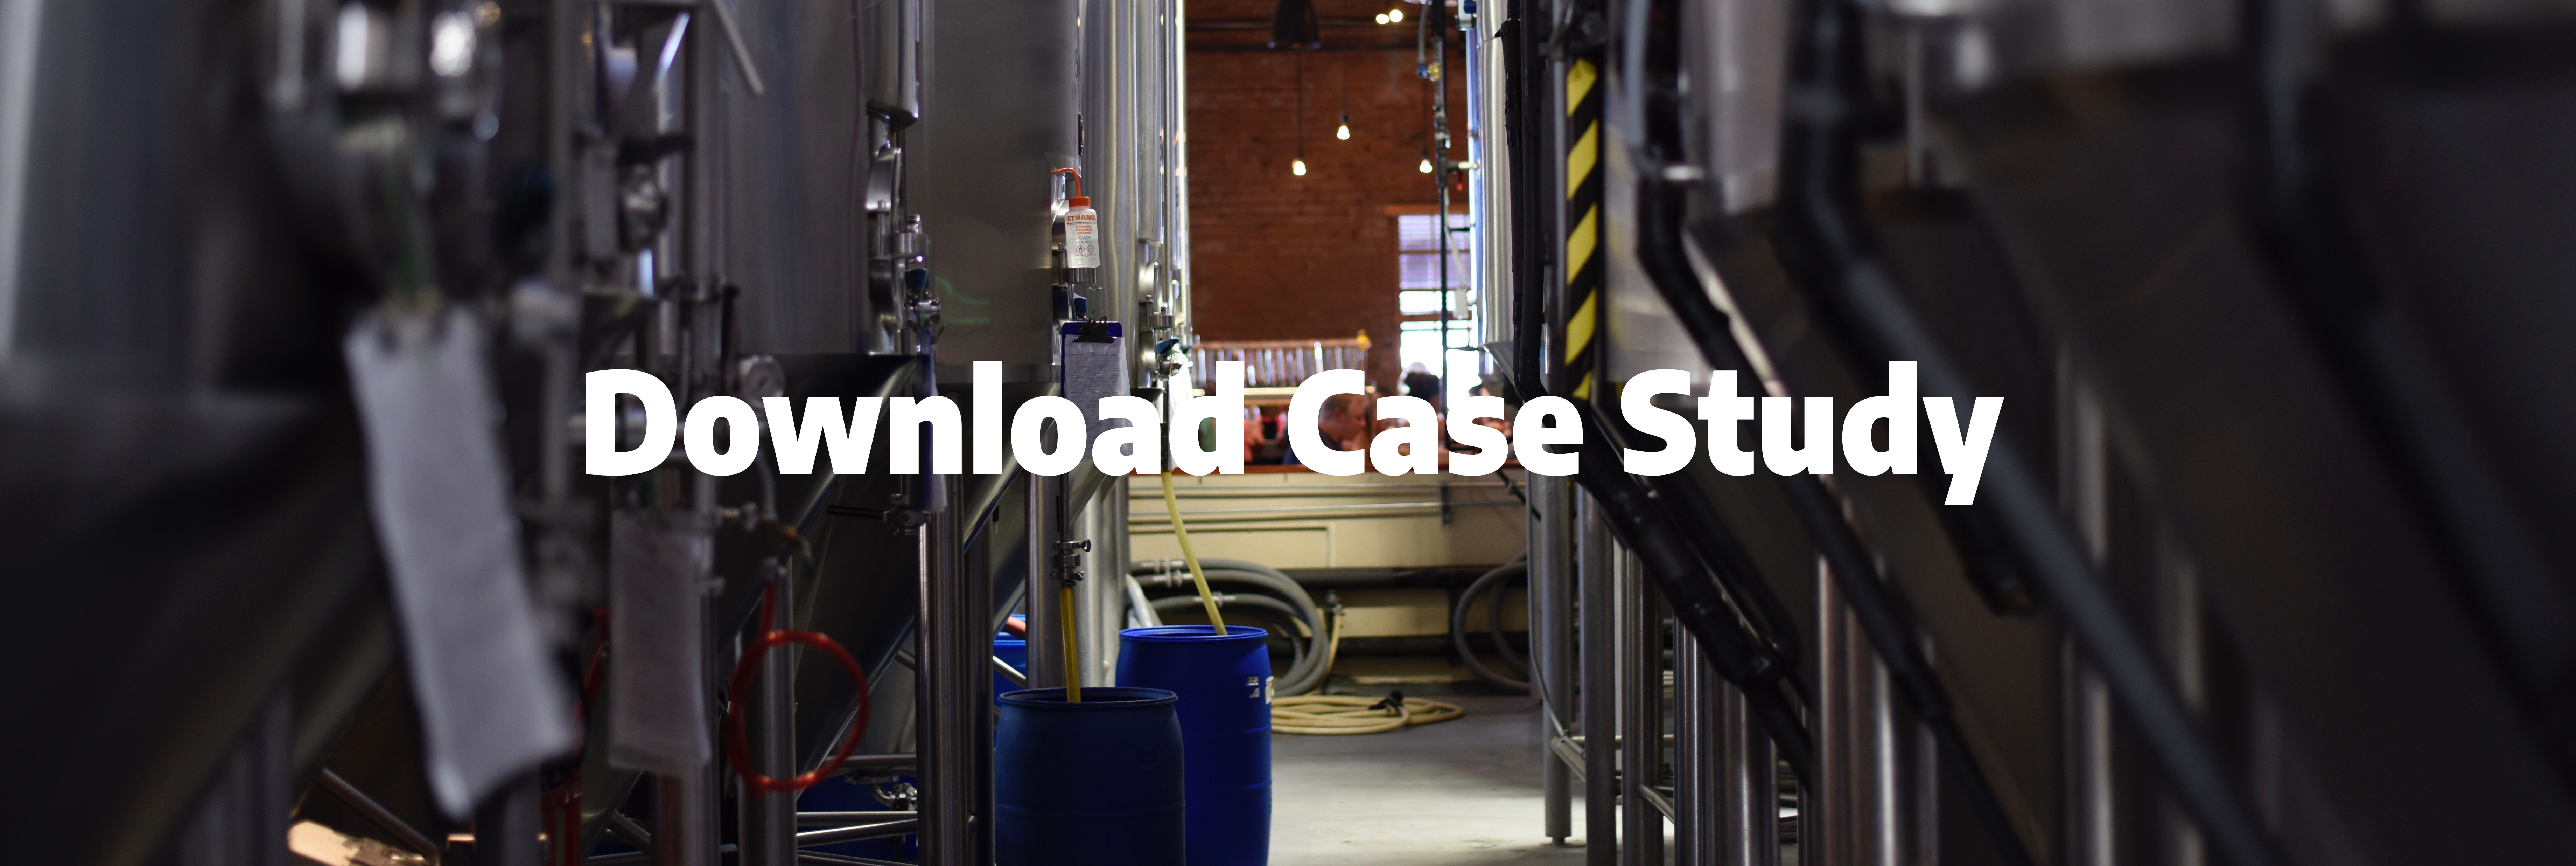 Brewery Tanks Case Study